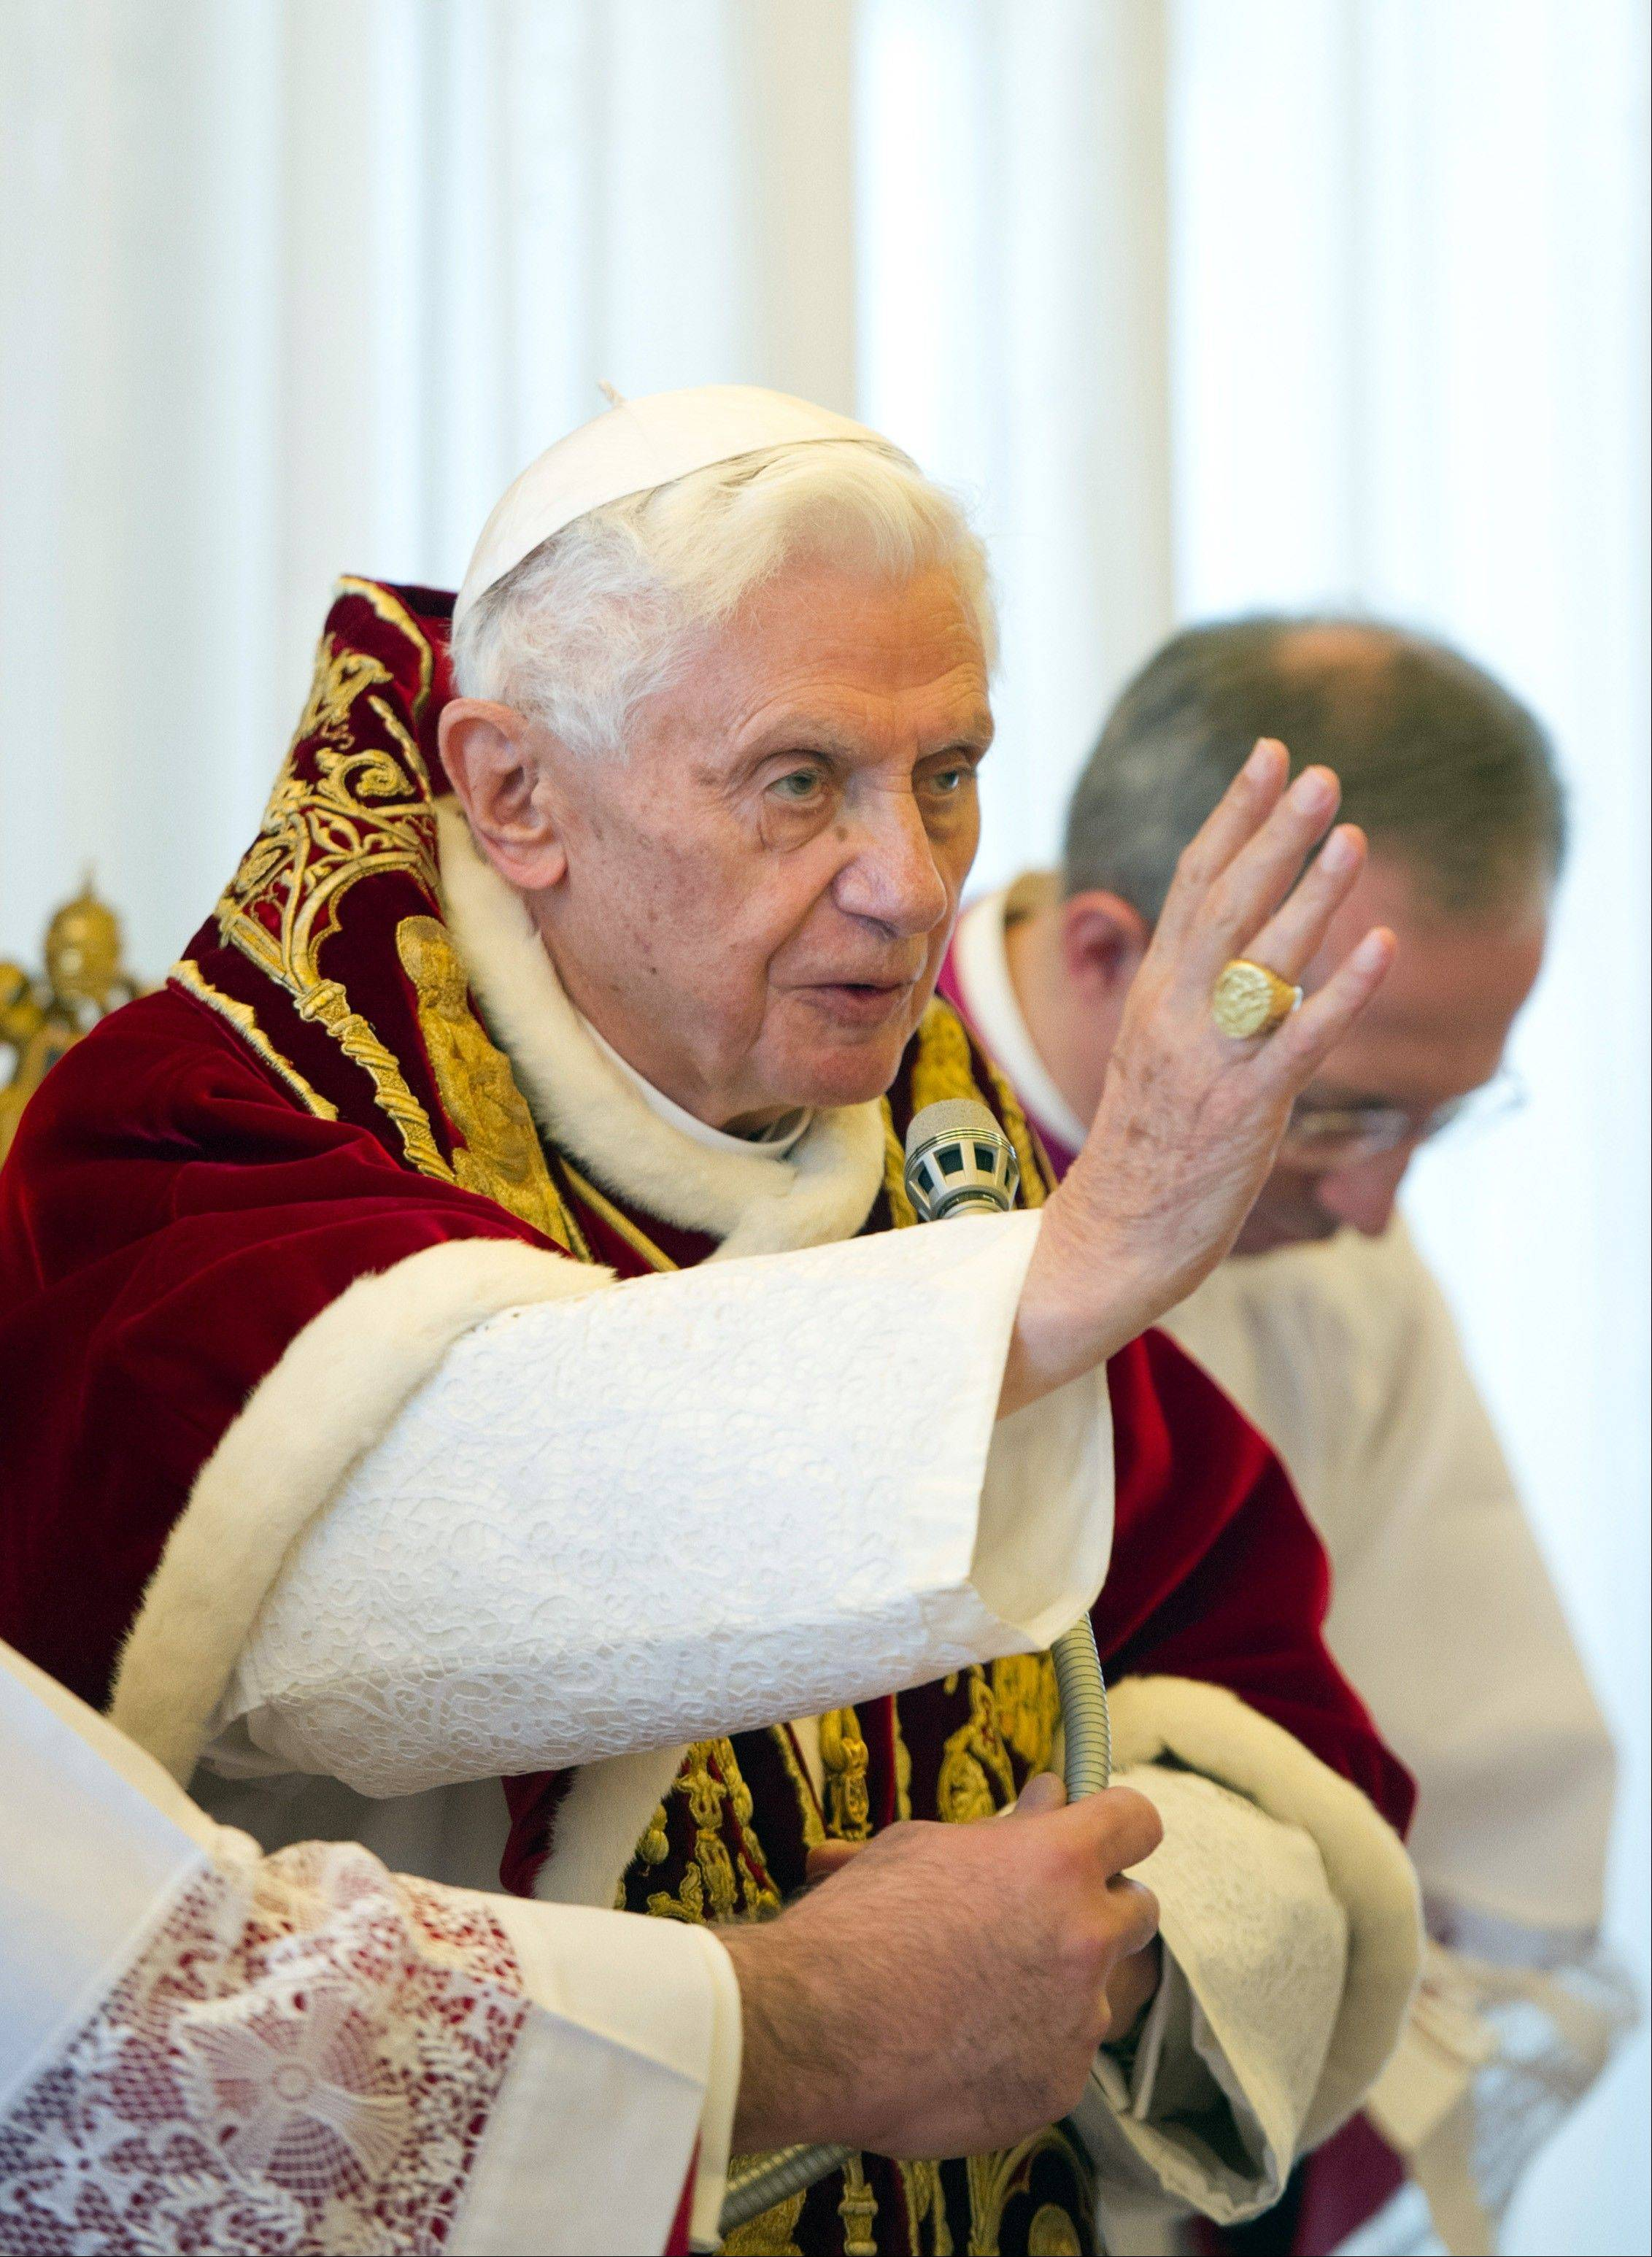 Pope Benedict XVI delivers his blessing Monday at the end of a meeting of Vatican cardinals at the Vatican.